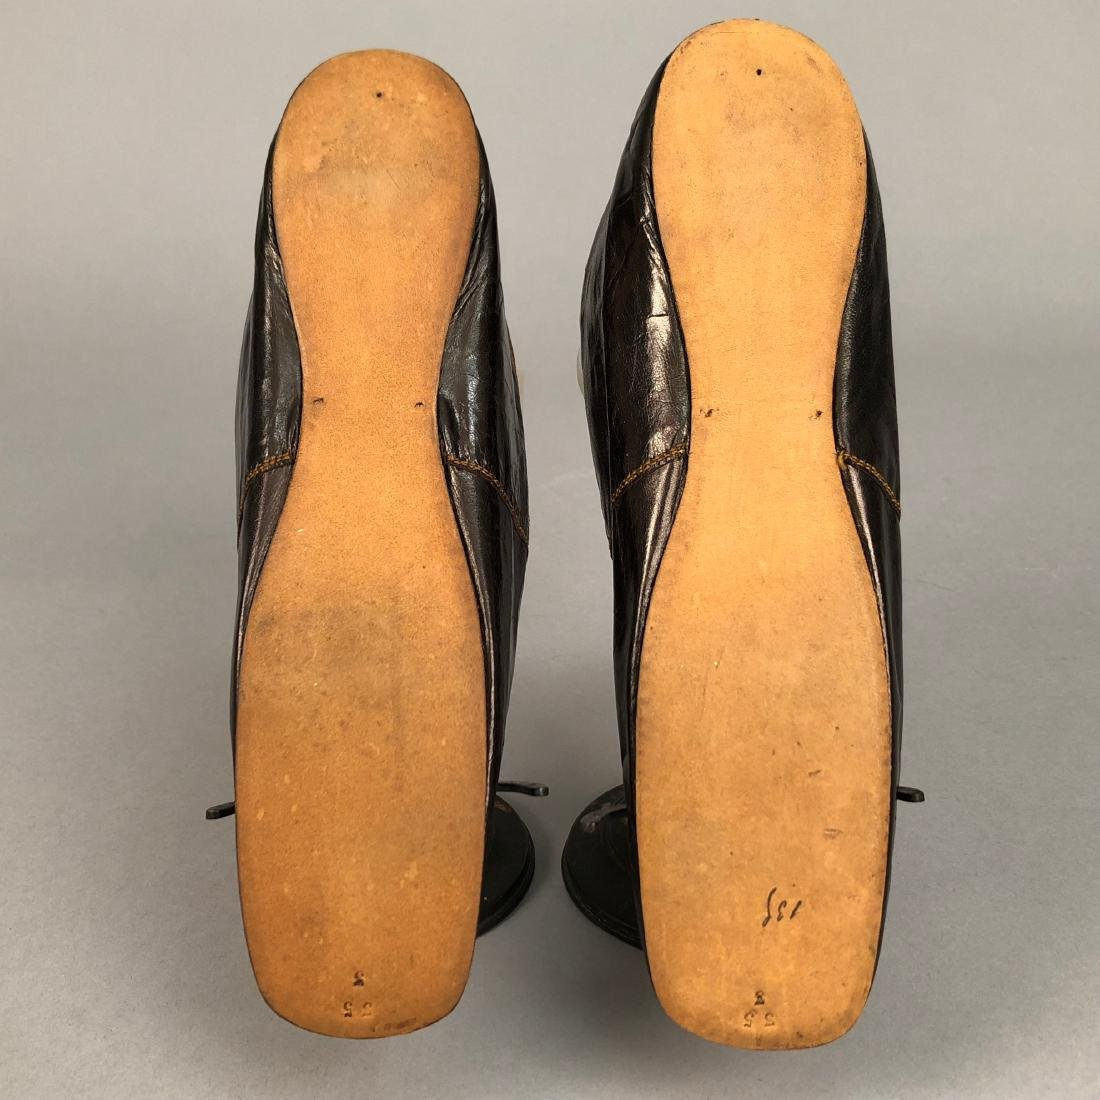 KID SHOES with BARETTE VAMP, 1840s - 1850s - 4